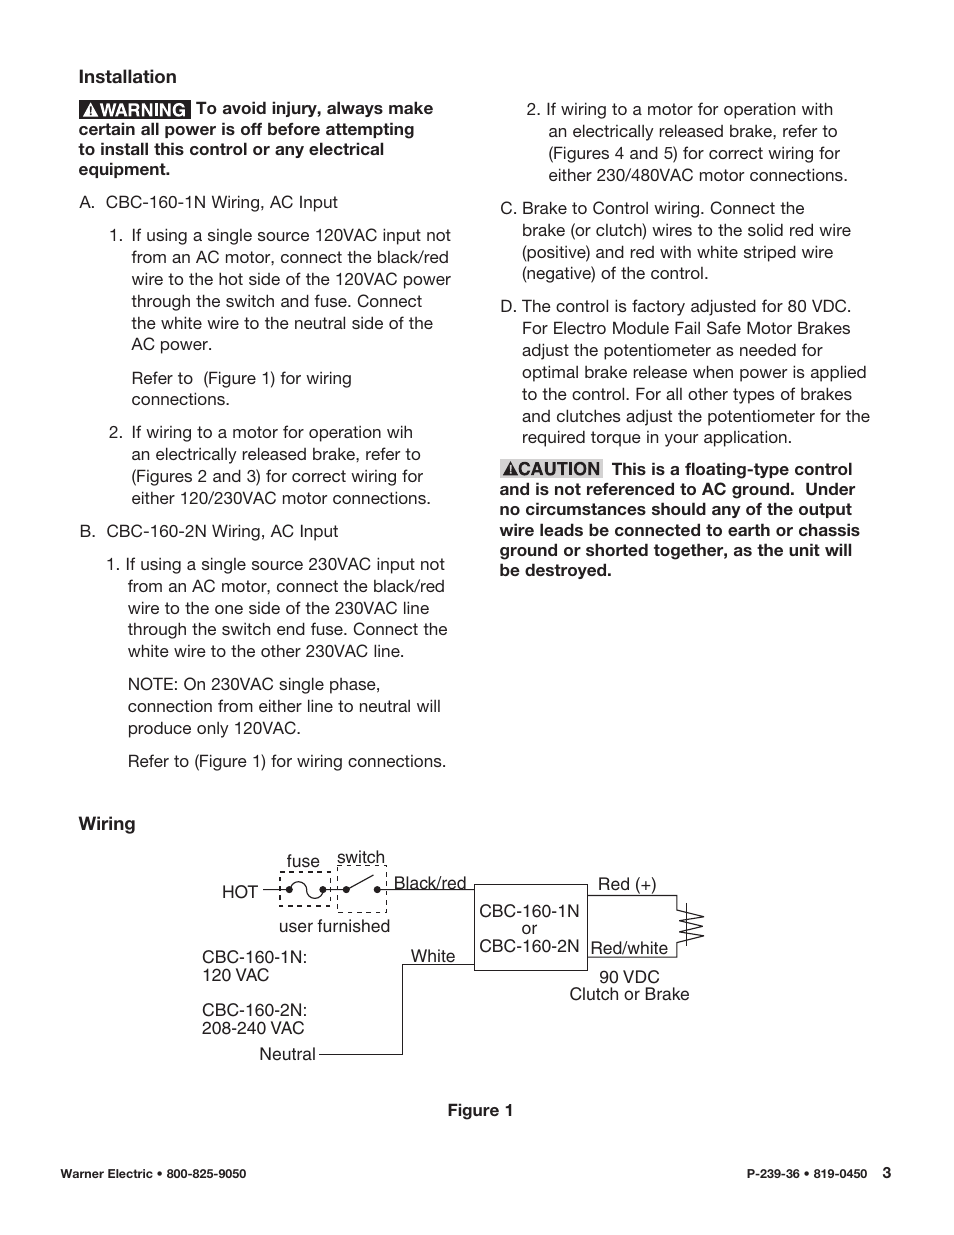 Warner Electric Cbc 160 2n User Manual Page 3 6 Also For 230 Vac Wiring 1n